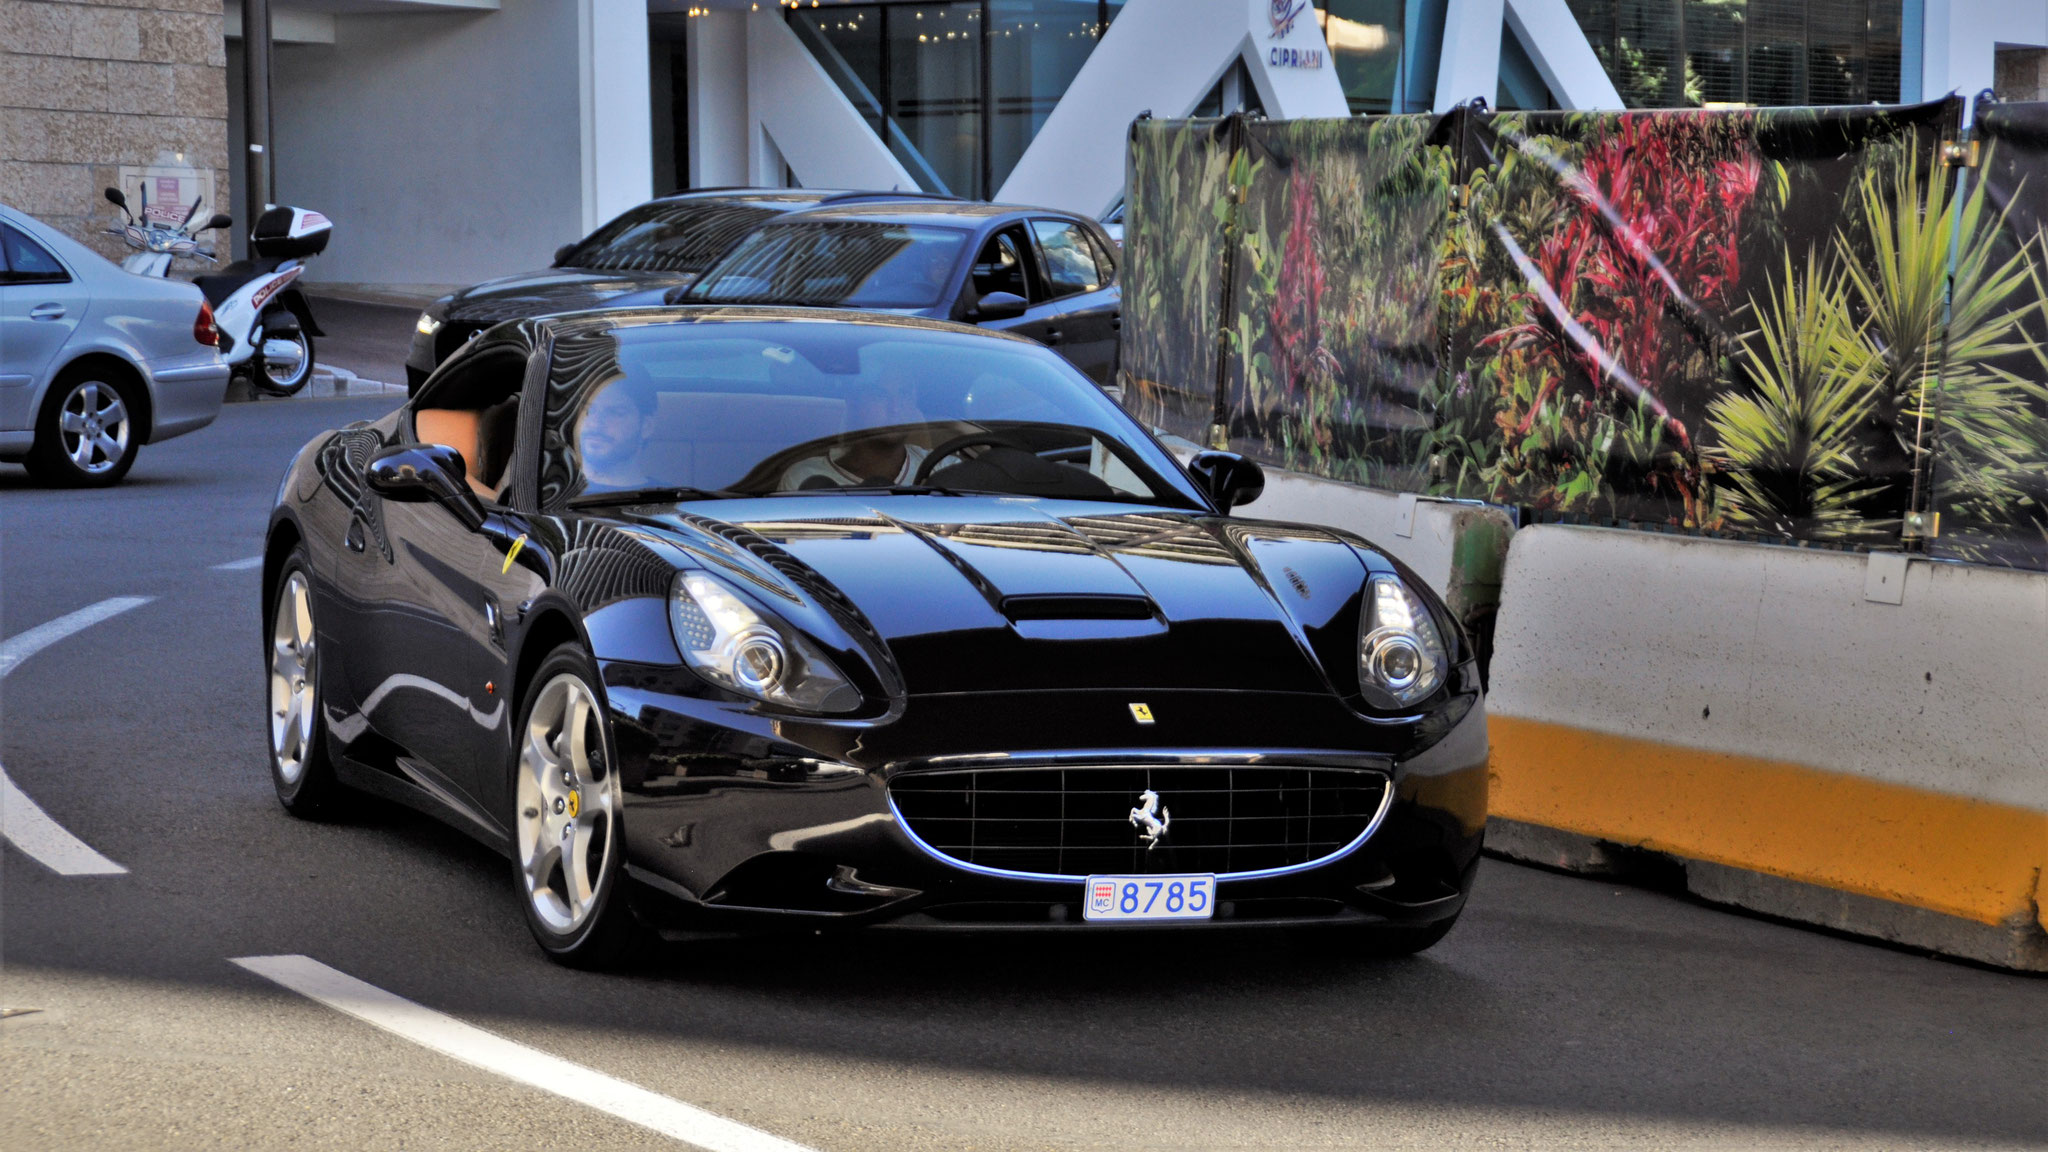 Ferrari California - 8785 (MC)